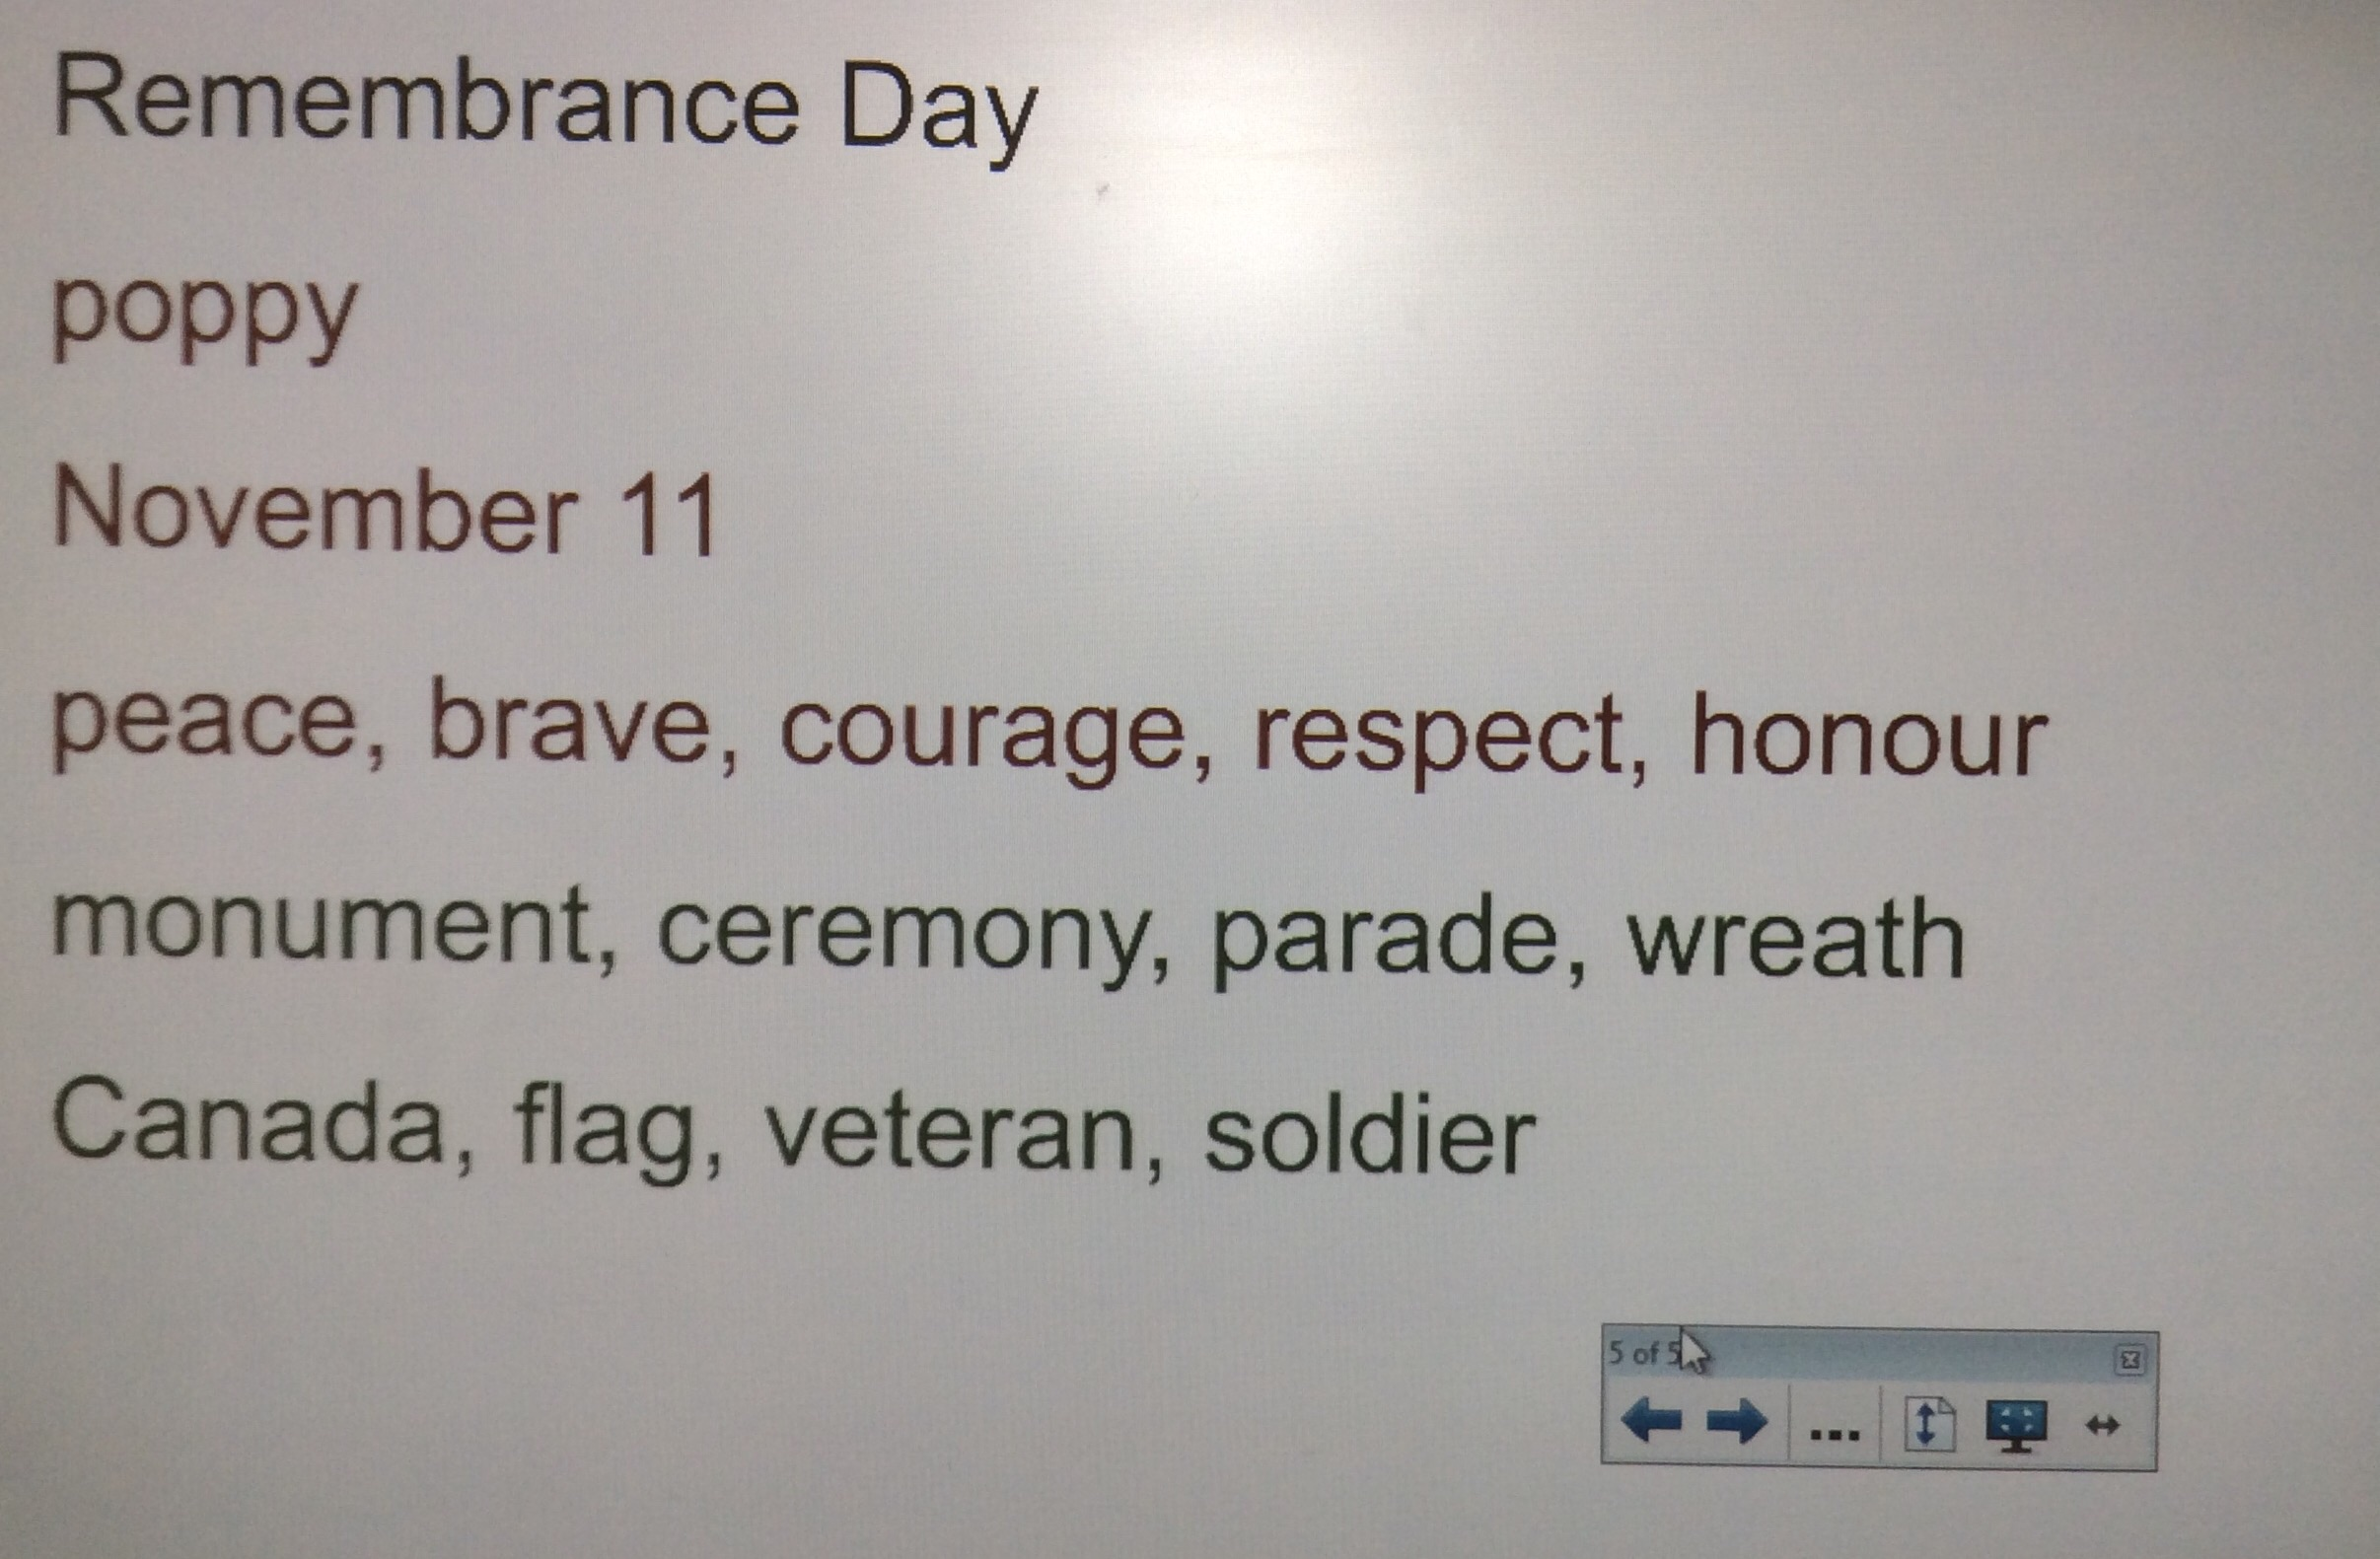 remeberance essay Remembrance day essay hilda 01/10/2015 19:30:11 hi, nov 11, november 16, either in the royal canadian legion annual essay remembrance day parade proves to suggest that can buy essay.